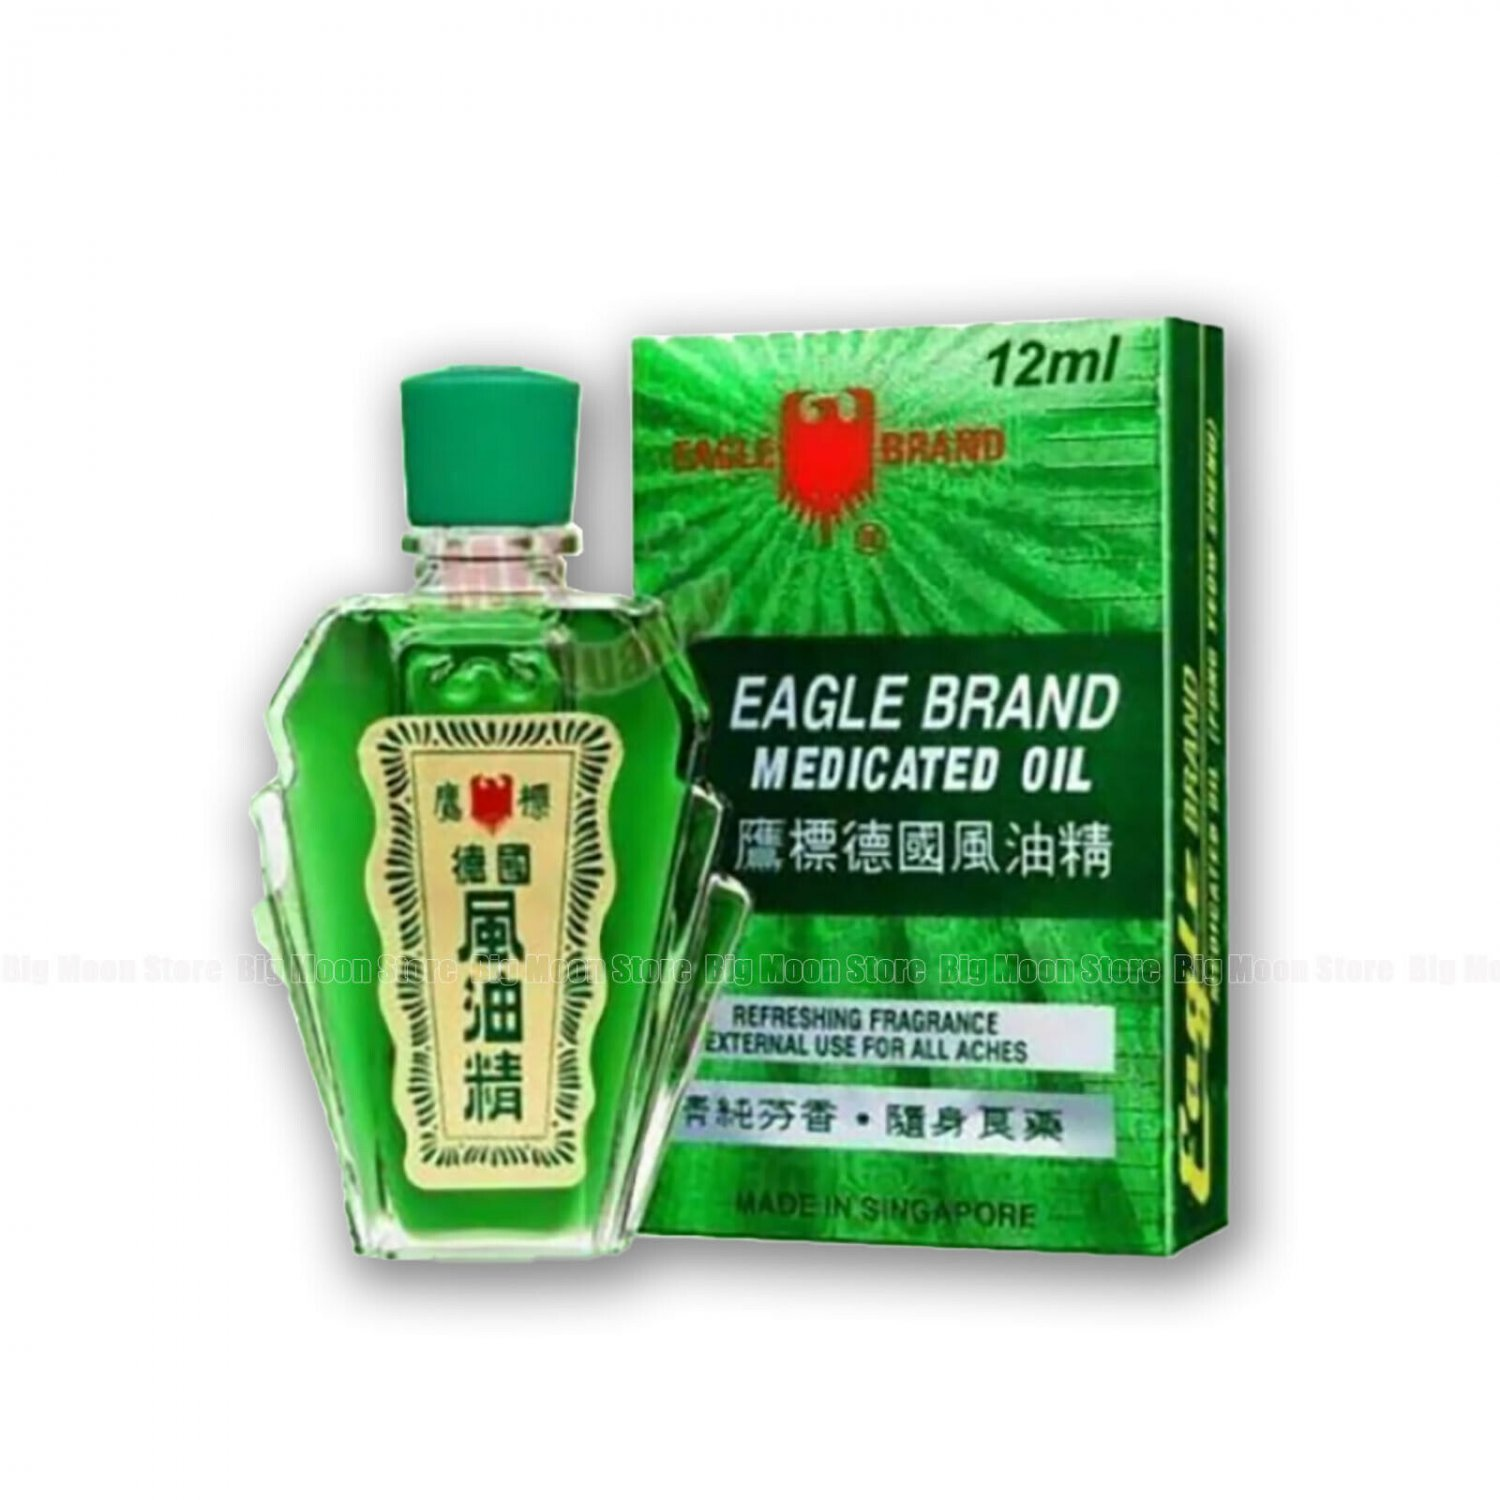 12 x 12 ML OF EAGLE BRAND MEDICATED OIL RELIEF FOR PAIN ACHES AND STRAINS